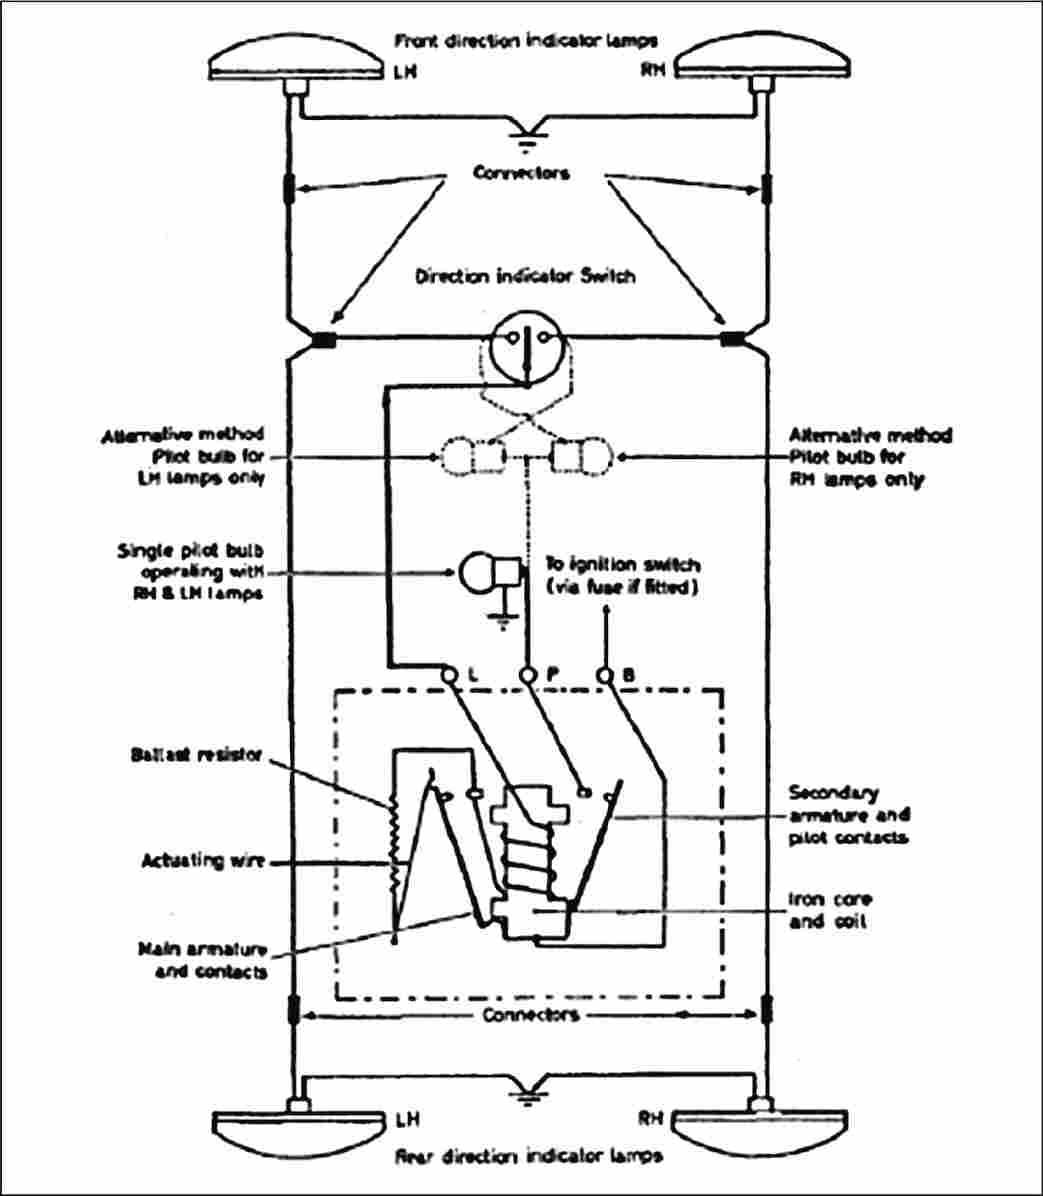 standard_flasher_diagram modern flasher circuits flasher unit wiring diagram at aneh.co